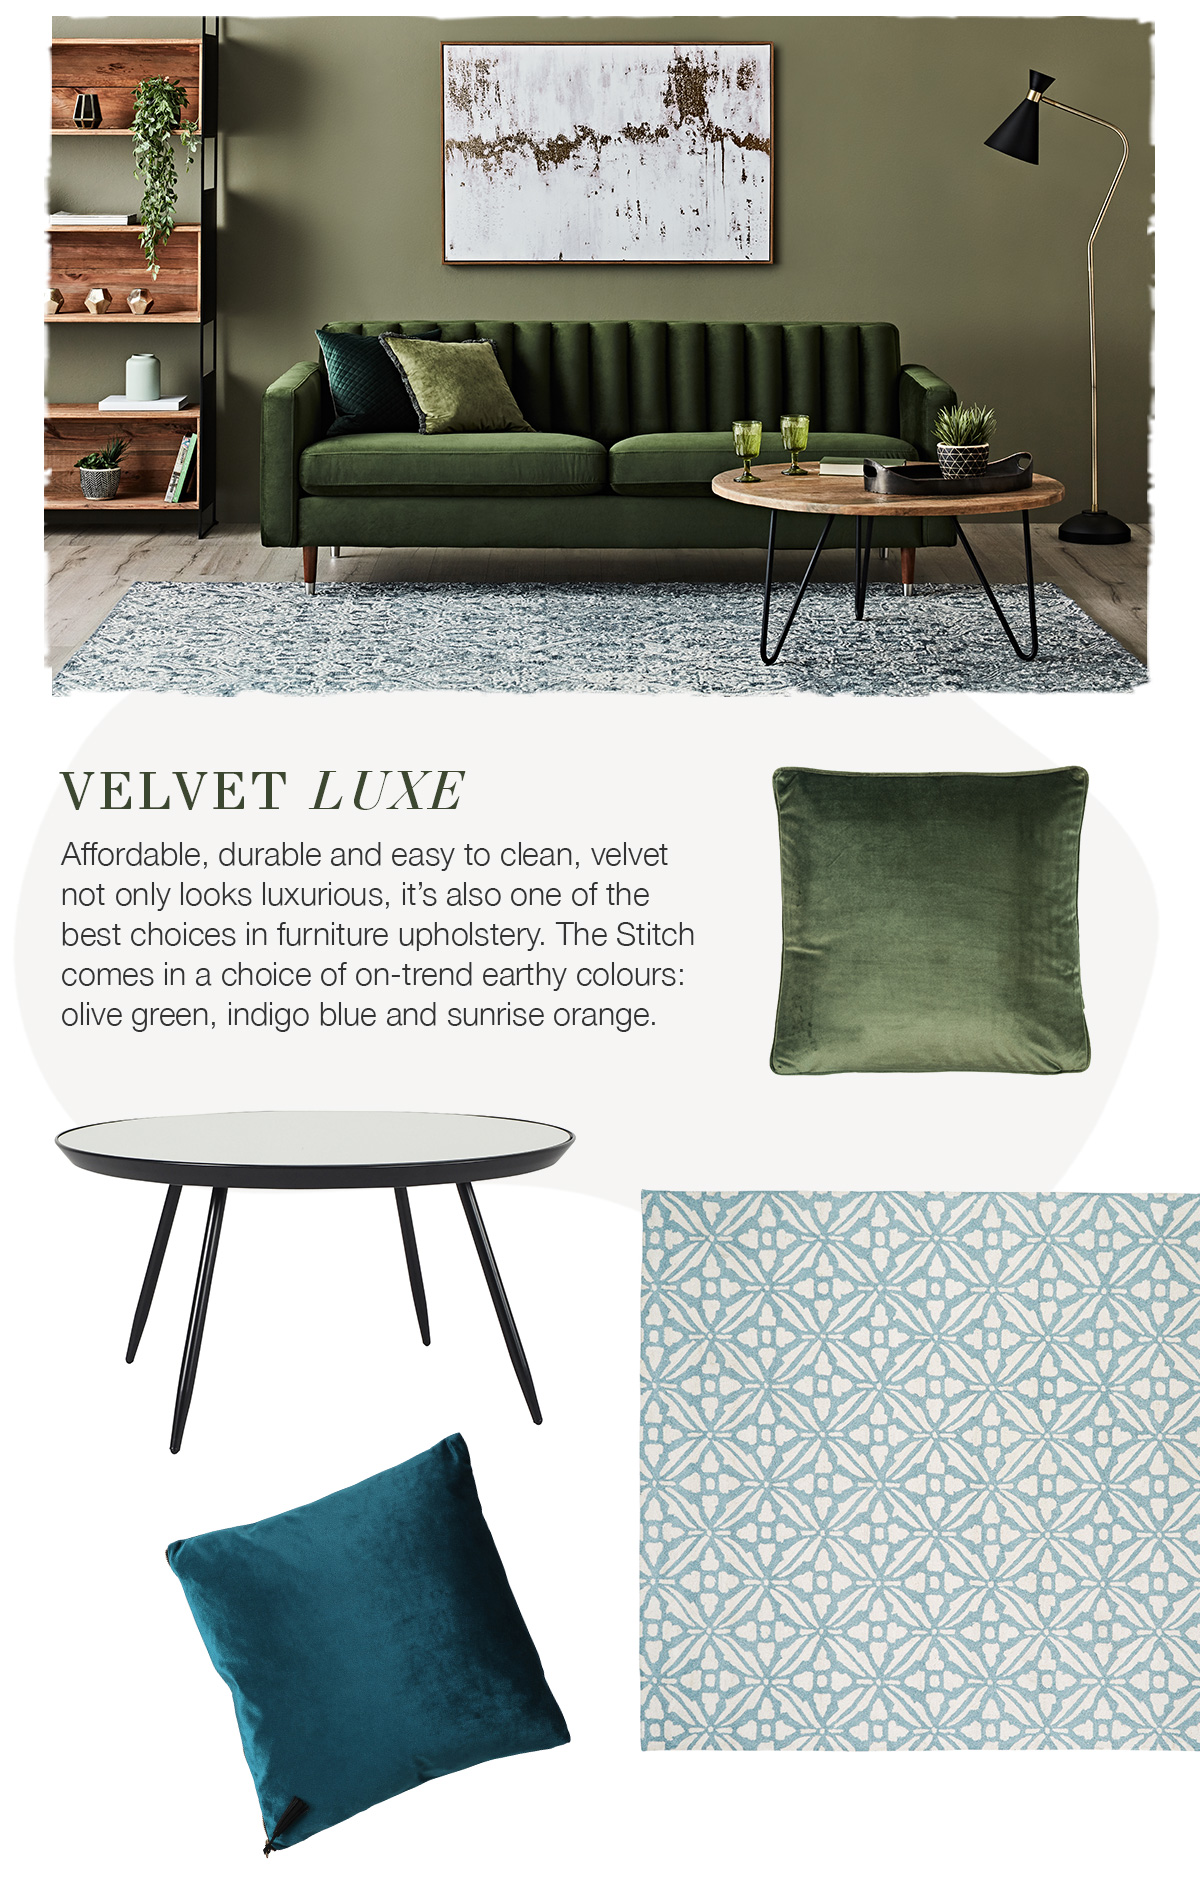 Up the Luxe with the Stitch Velvet Sofa - olive green sofa